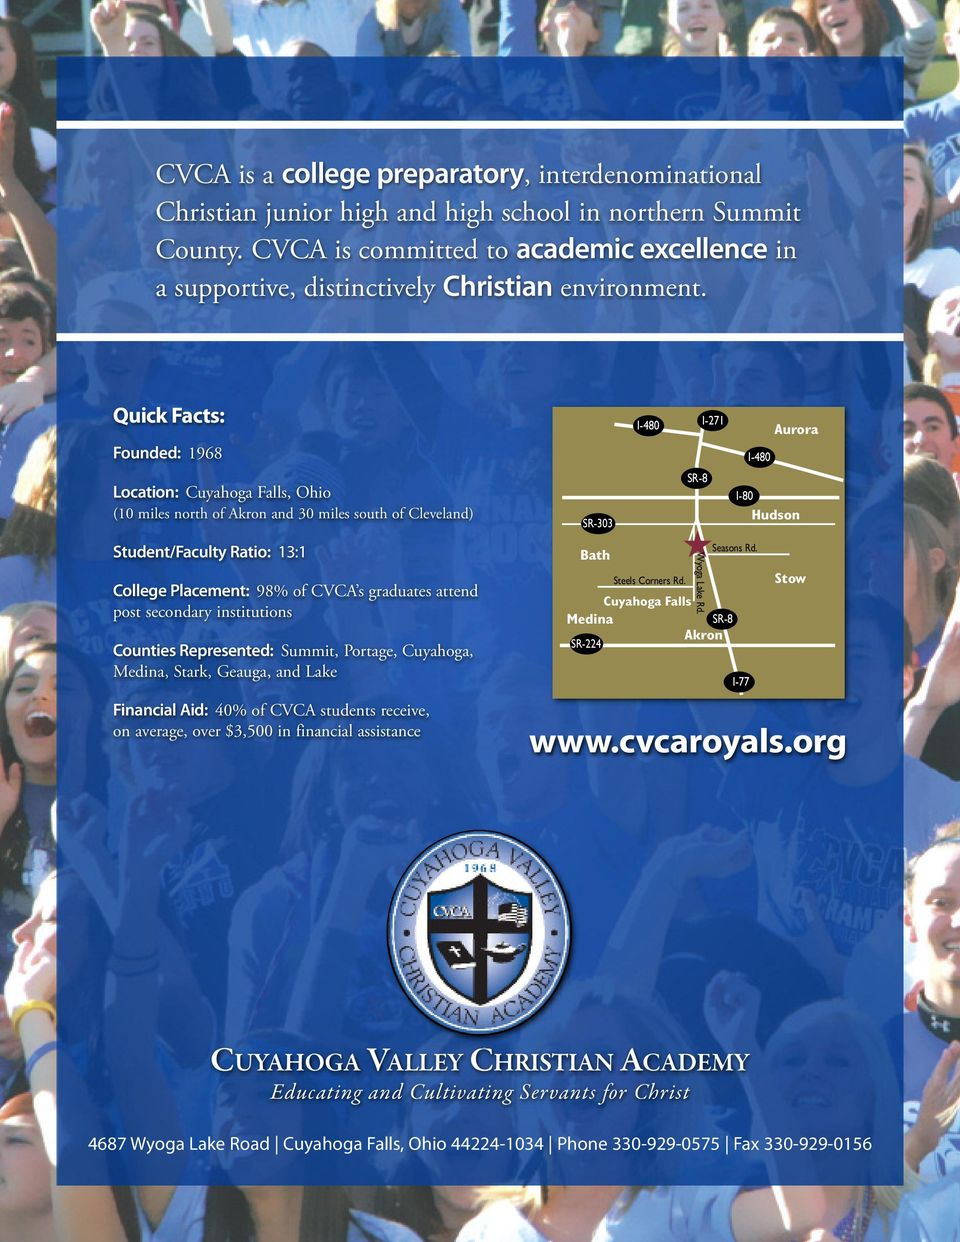 Quick Facts: Founded: 1968 Location: Cuyahoga Falls, Ohio (10 miles north of Akron and 30 miles south of Cleveland) Student/Faculty Ratio: 13:1 College Placement: 98% of CVCA s graduates attend post